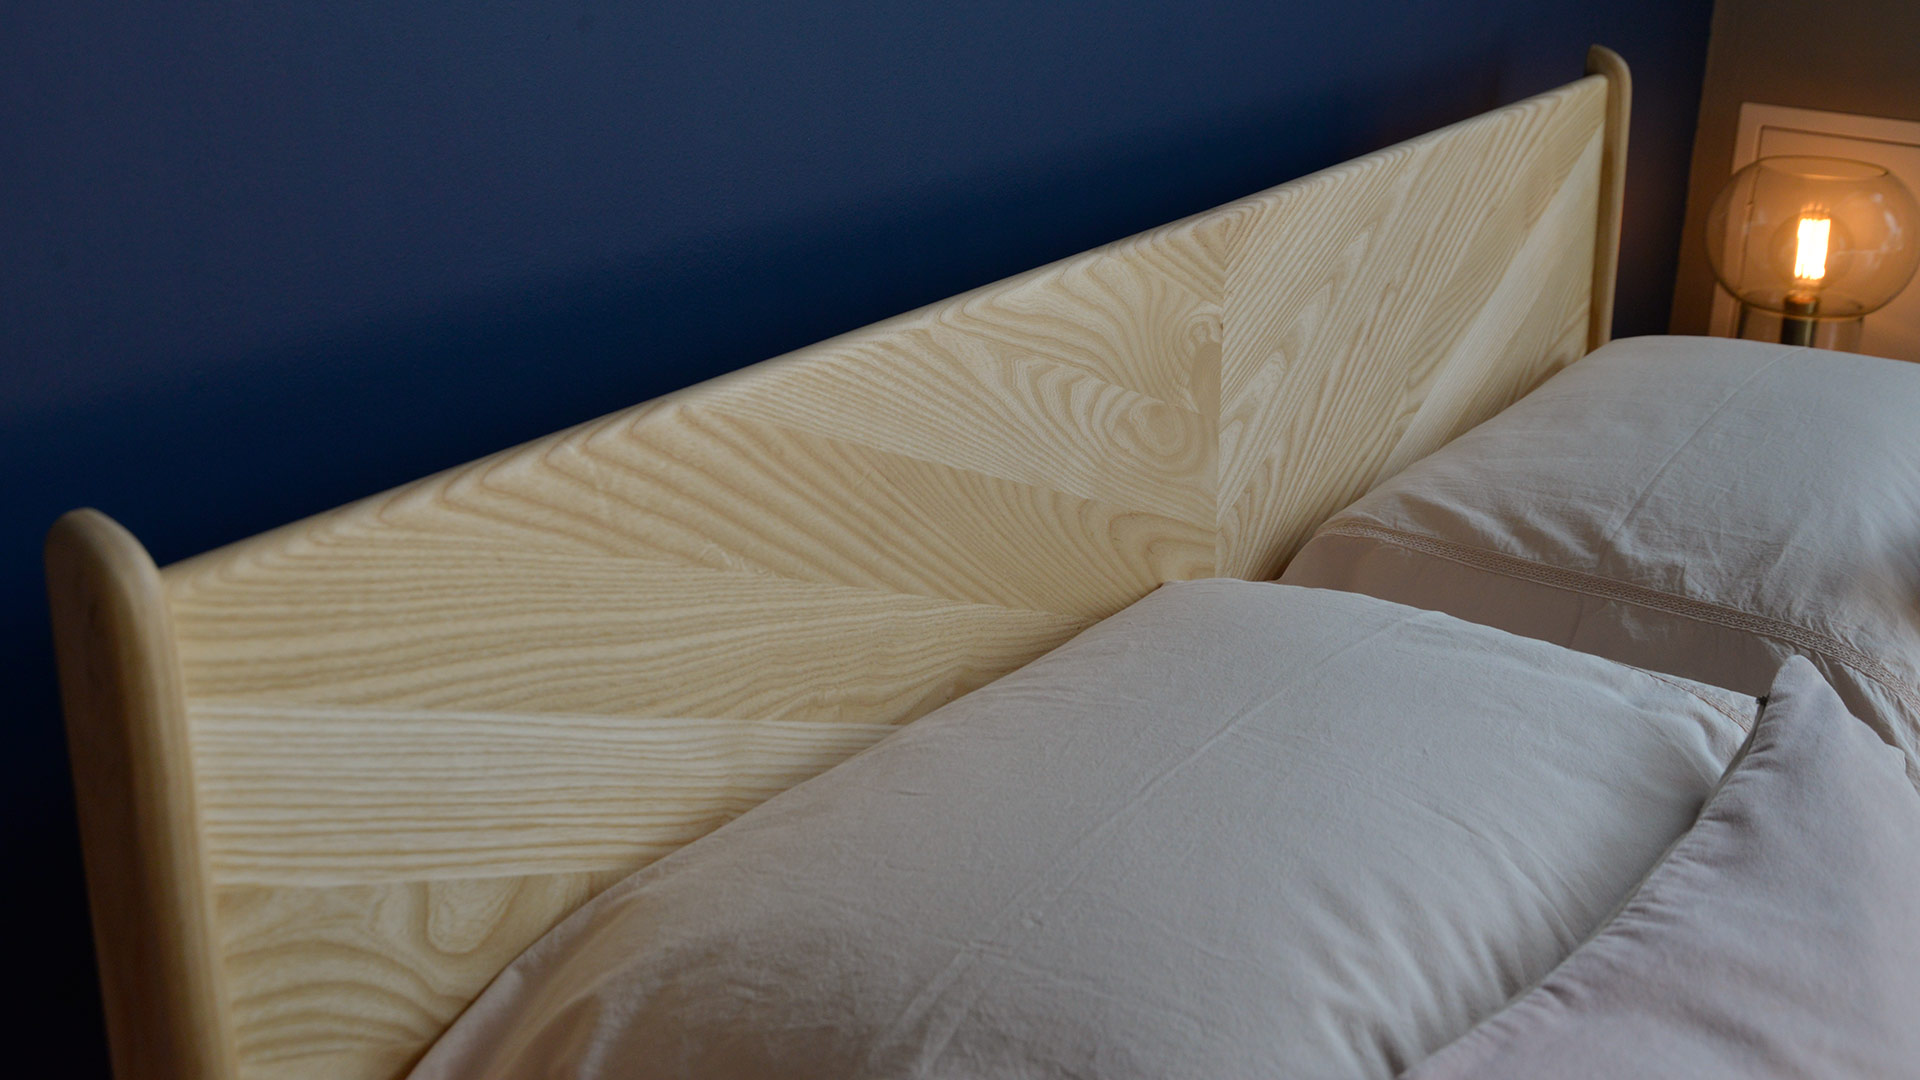 A close view of the chevron pattern Hoxton headboard hand-made from sustainably sourced solid wood.